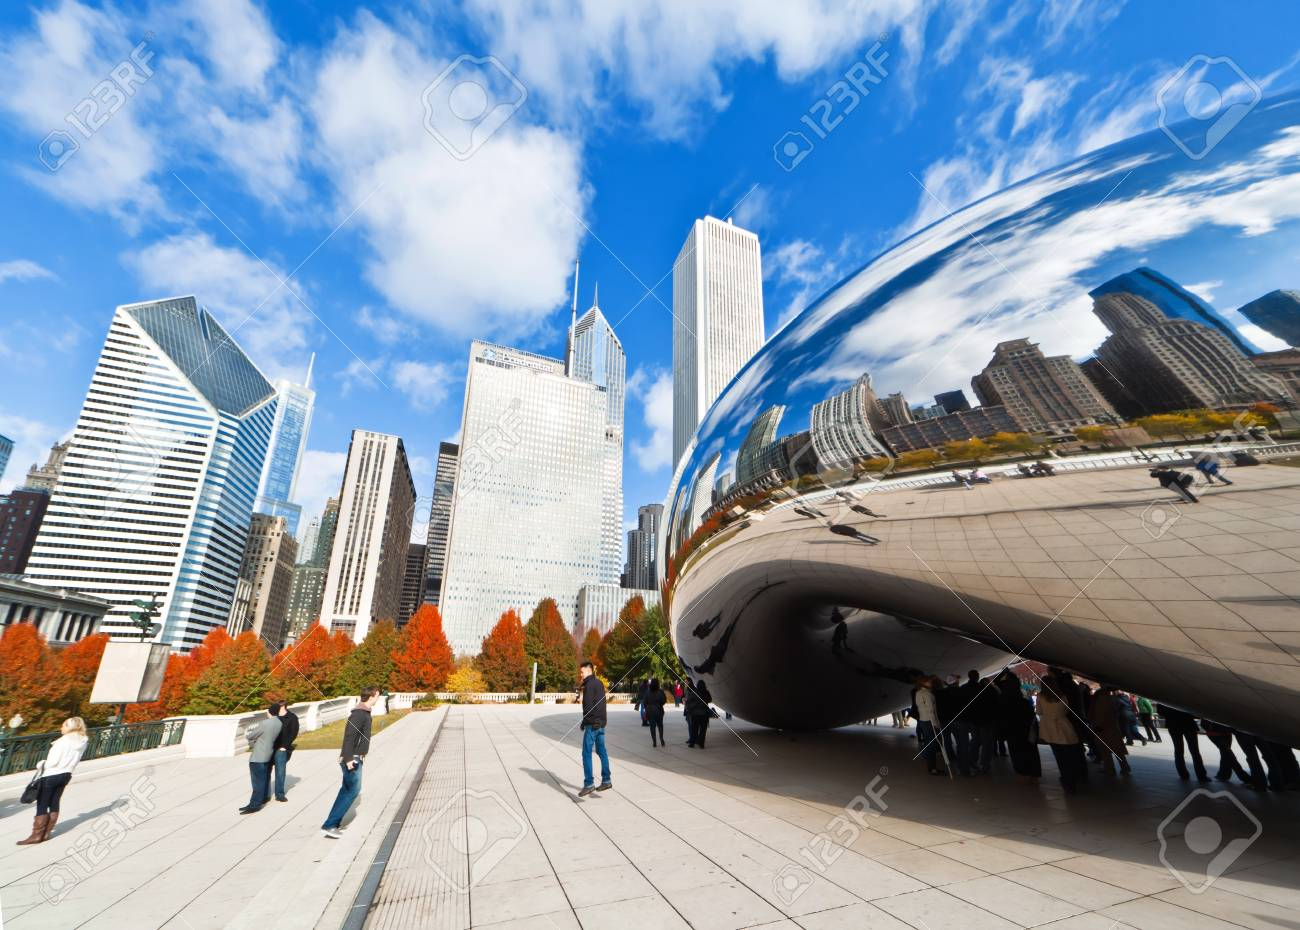 CHICAGO, USA - NOVEMBER 14: The Millennium Park in downtown Chicago on November 14, 2010, which costs $475 million and is completed in 2004, a major construction since the World's Exposition of 1893. Stock Photo - 9256609